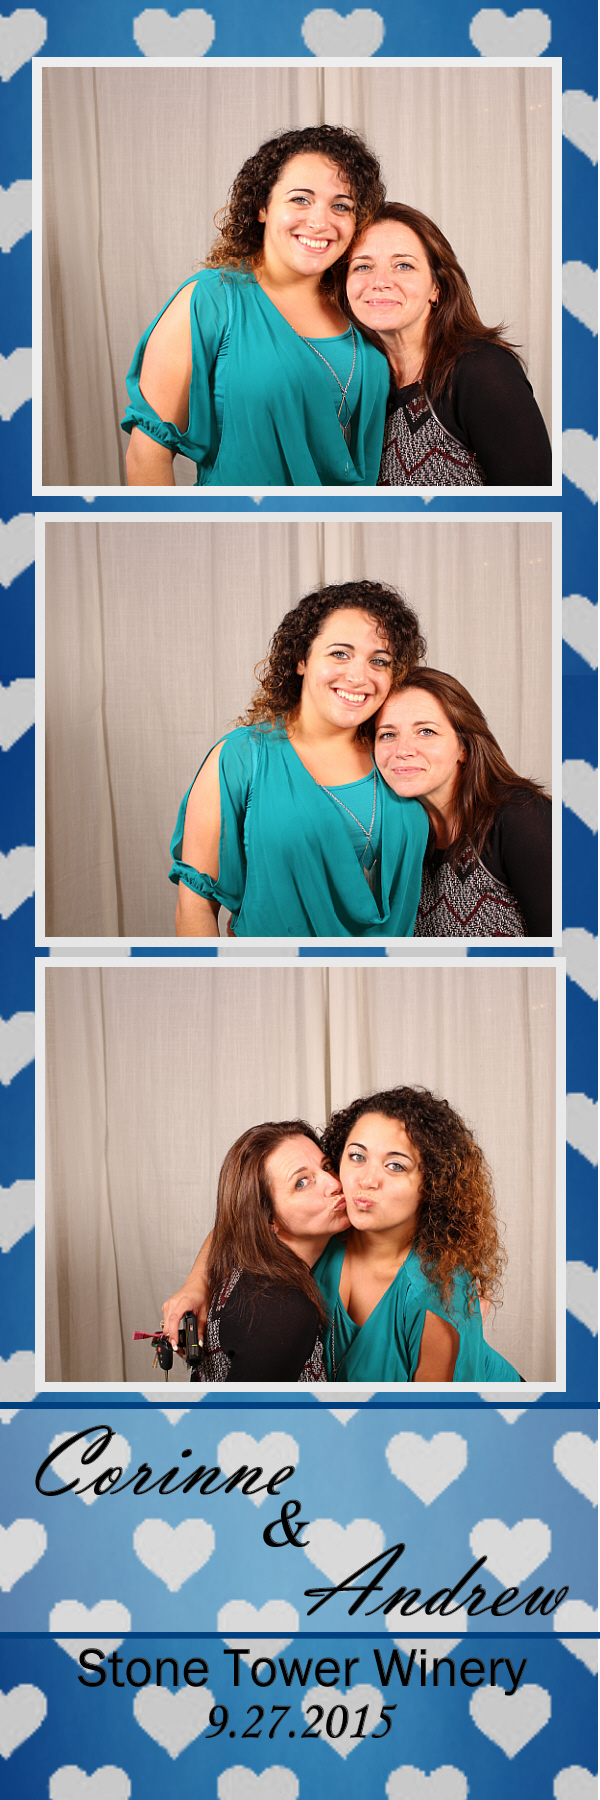 Guest House Events Photo Booth C&A (27).jpg